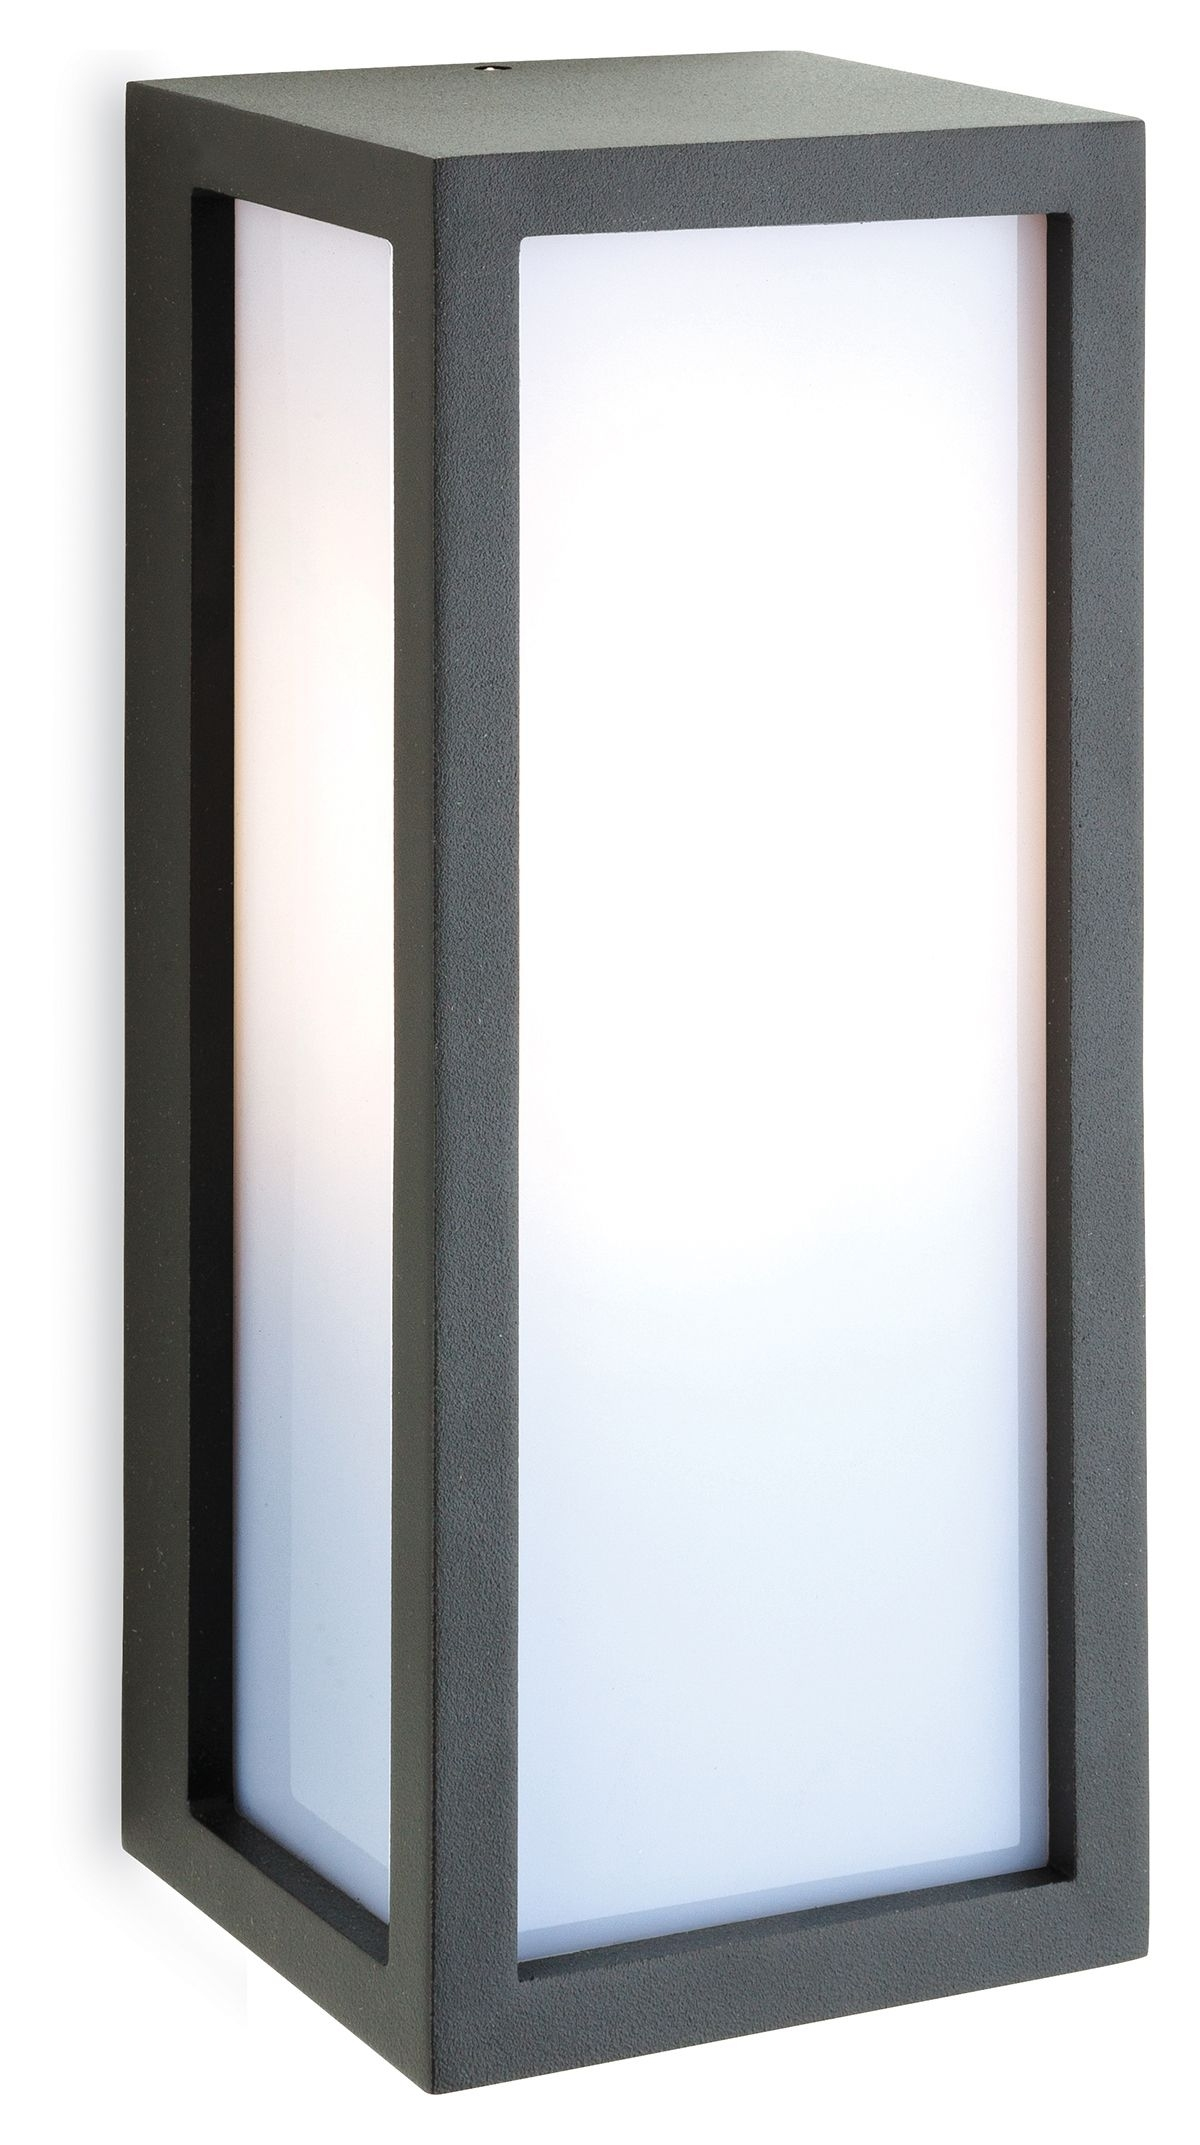 Wall Photo Light Box : Exterior Box Wall Light with Opal Diffuser